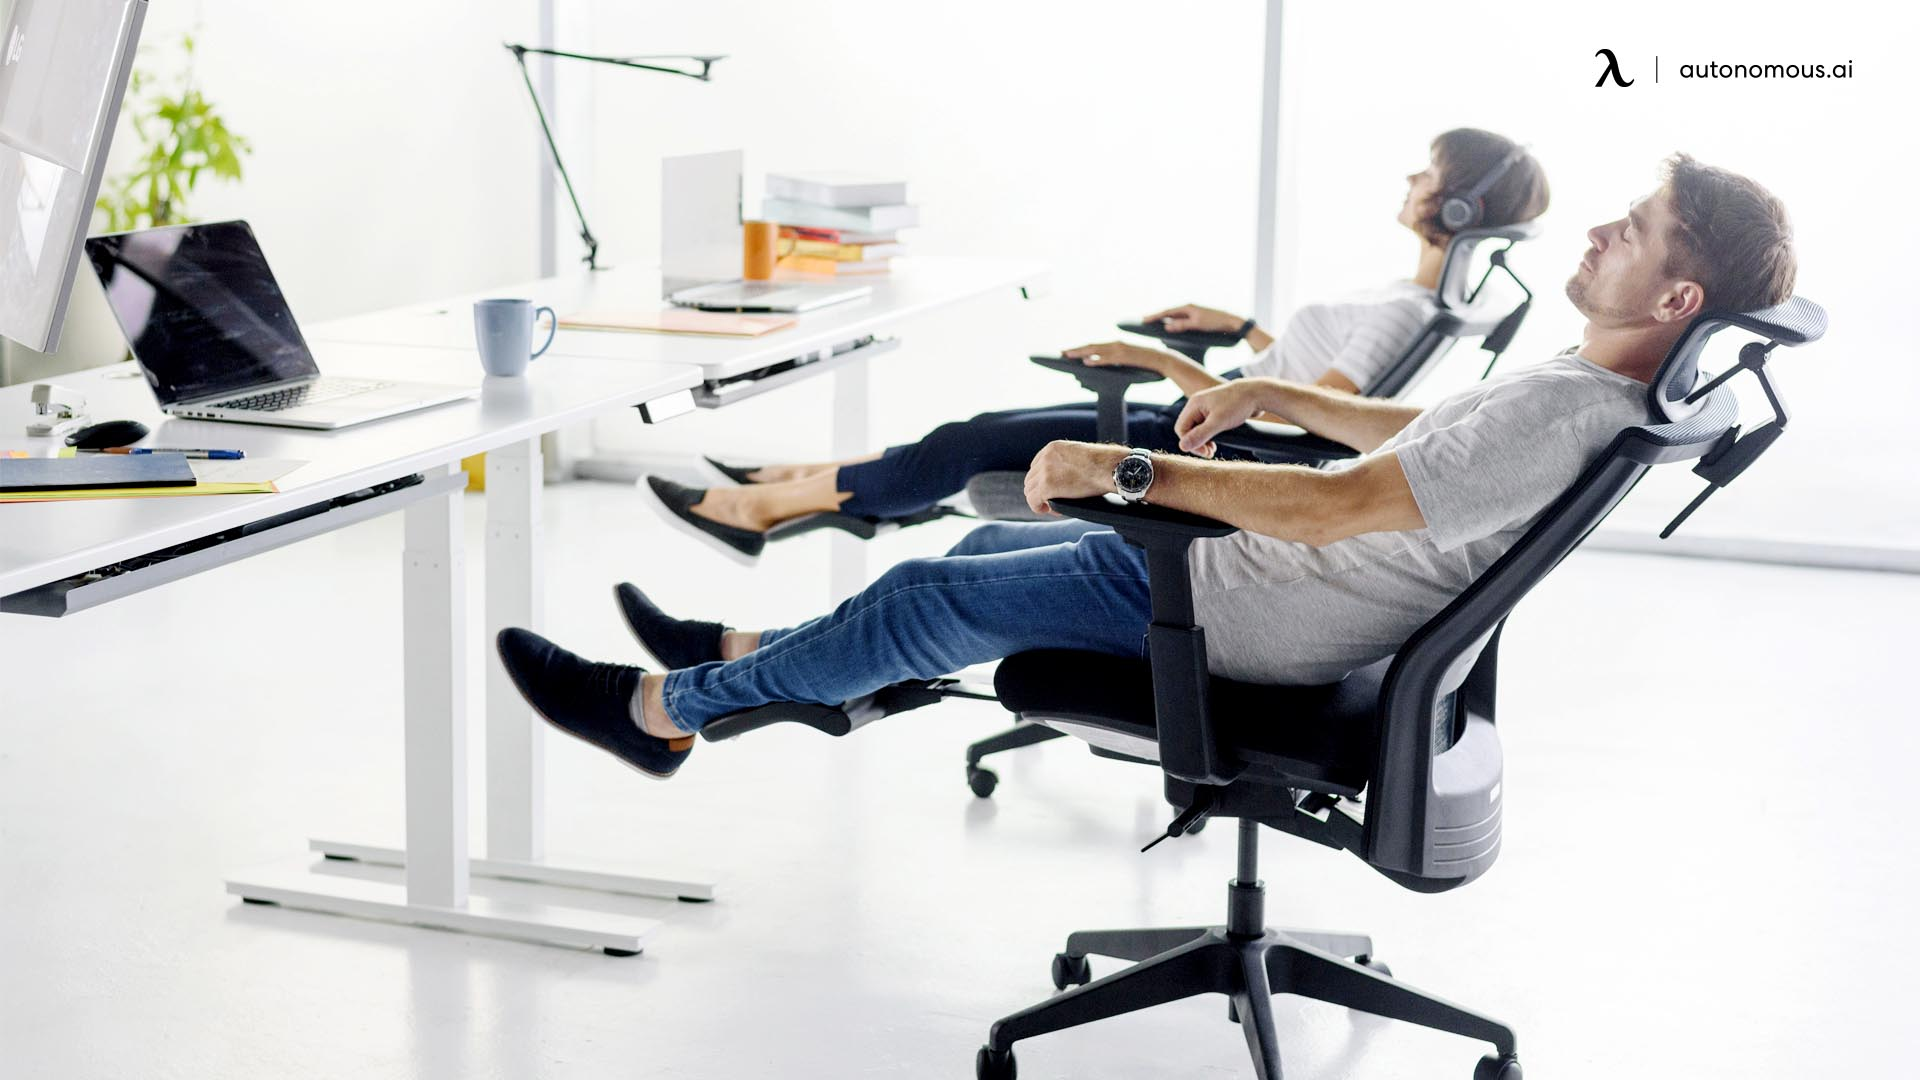 The Cons of a Reclining Ergonomic Work Office Chair